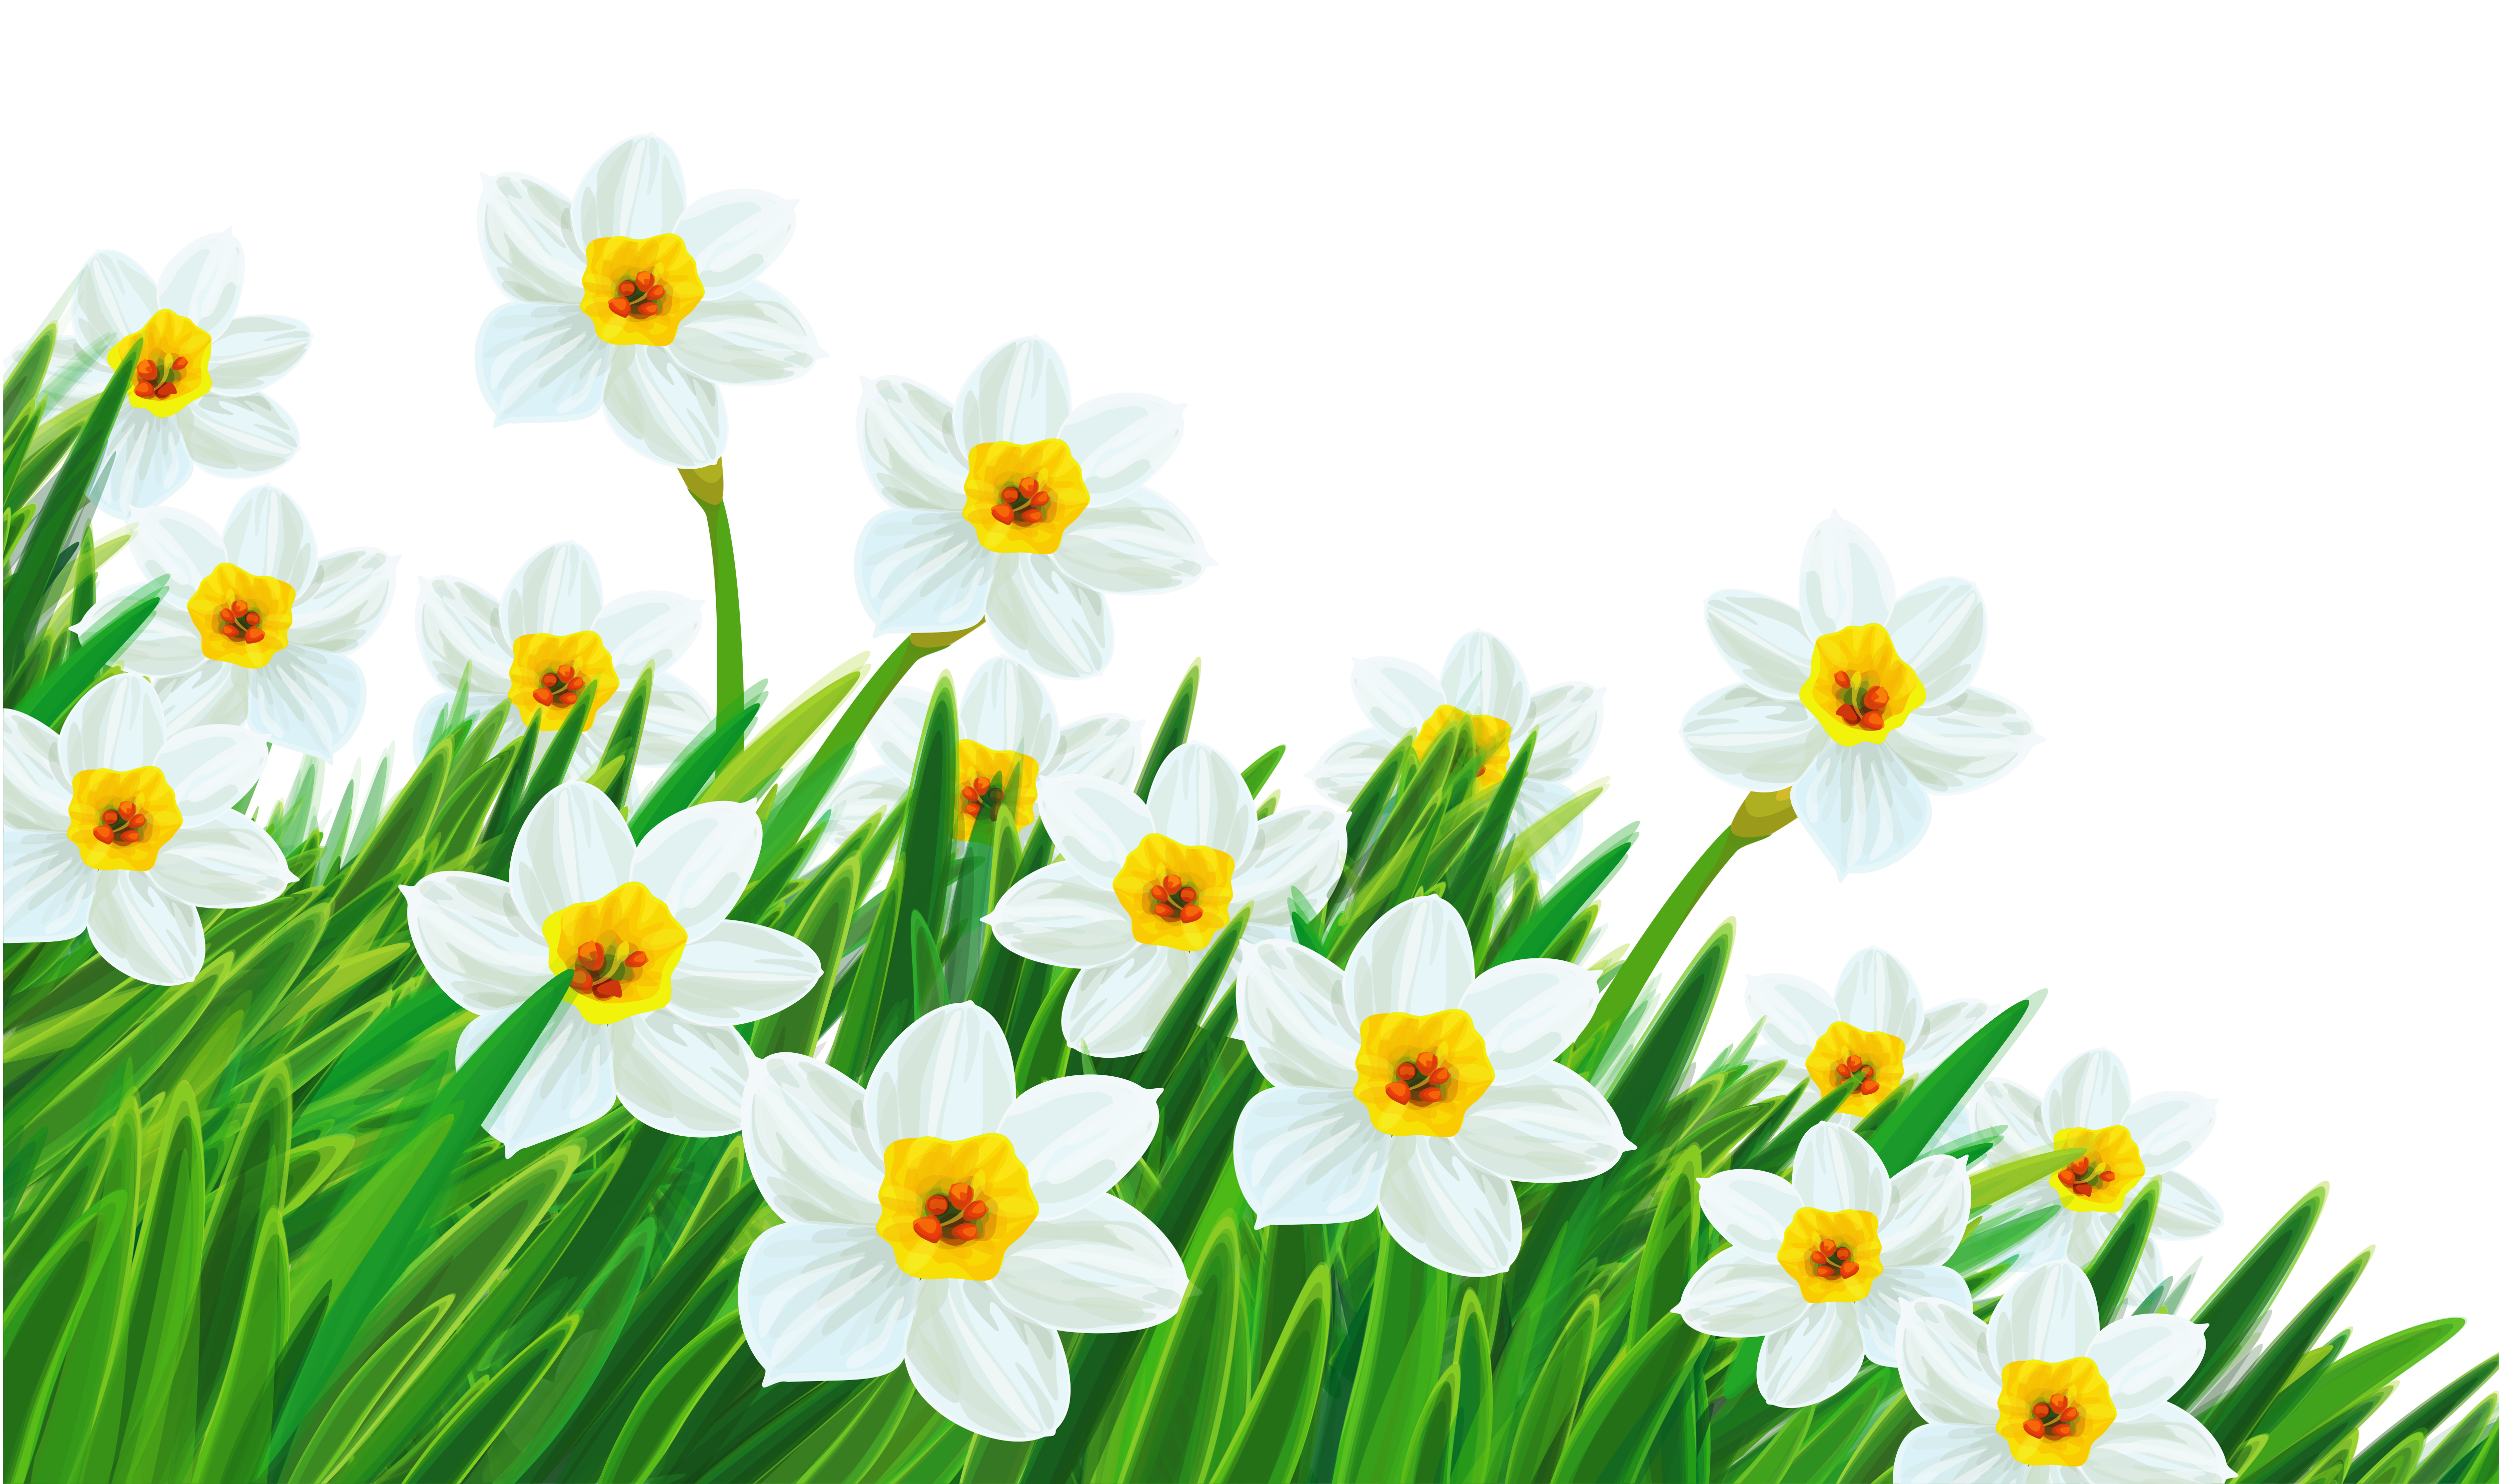 With daffodils tavasz spring. Daisies clipart flores